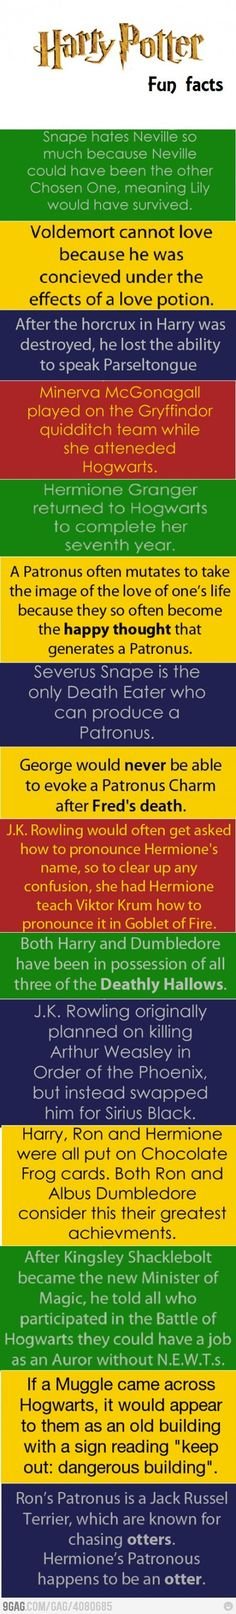 Harry Potter fun facts, soon to be added to the tons of Potter truths already in my head, lol.